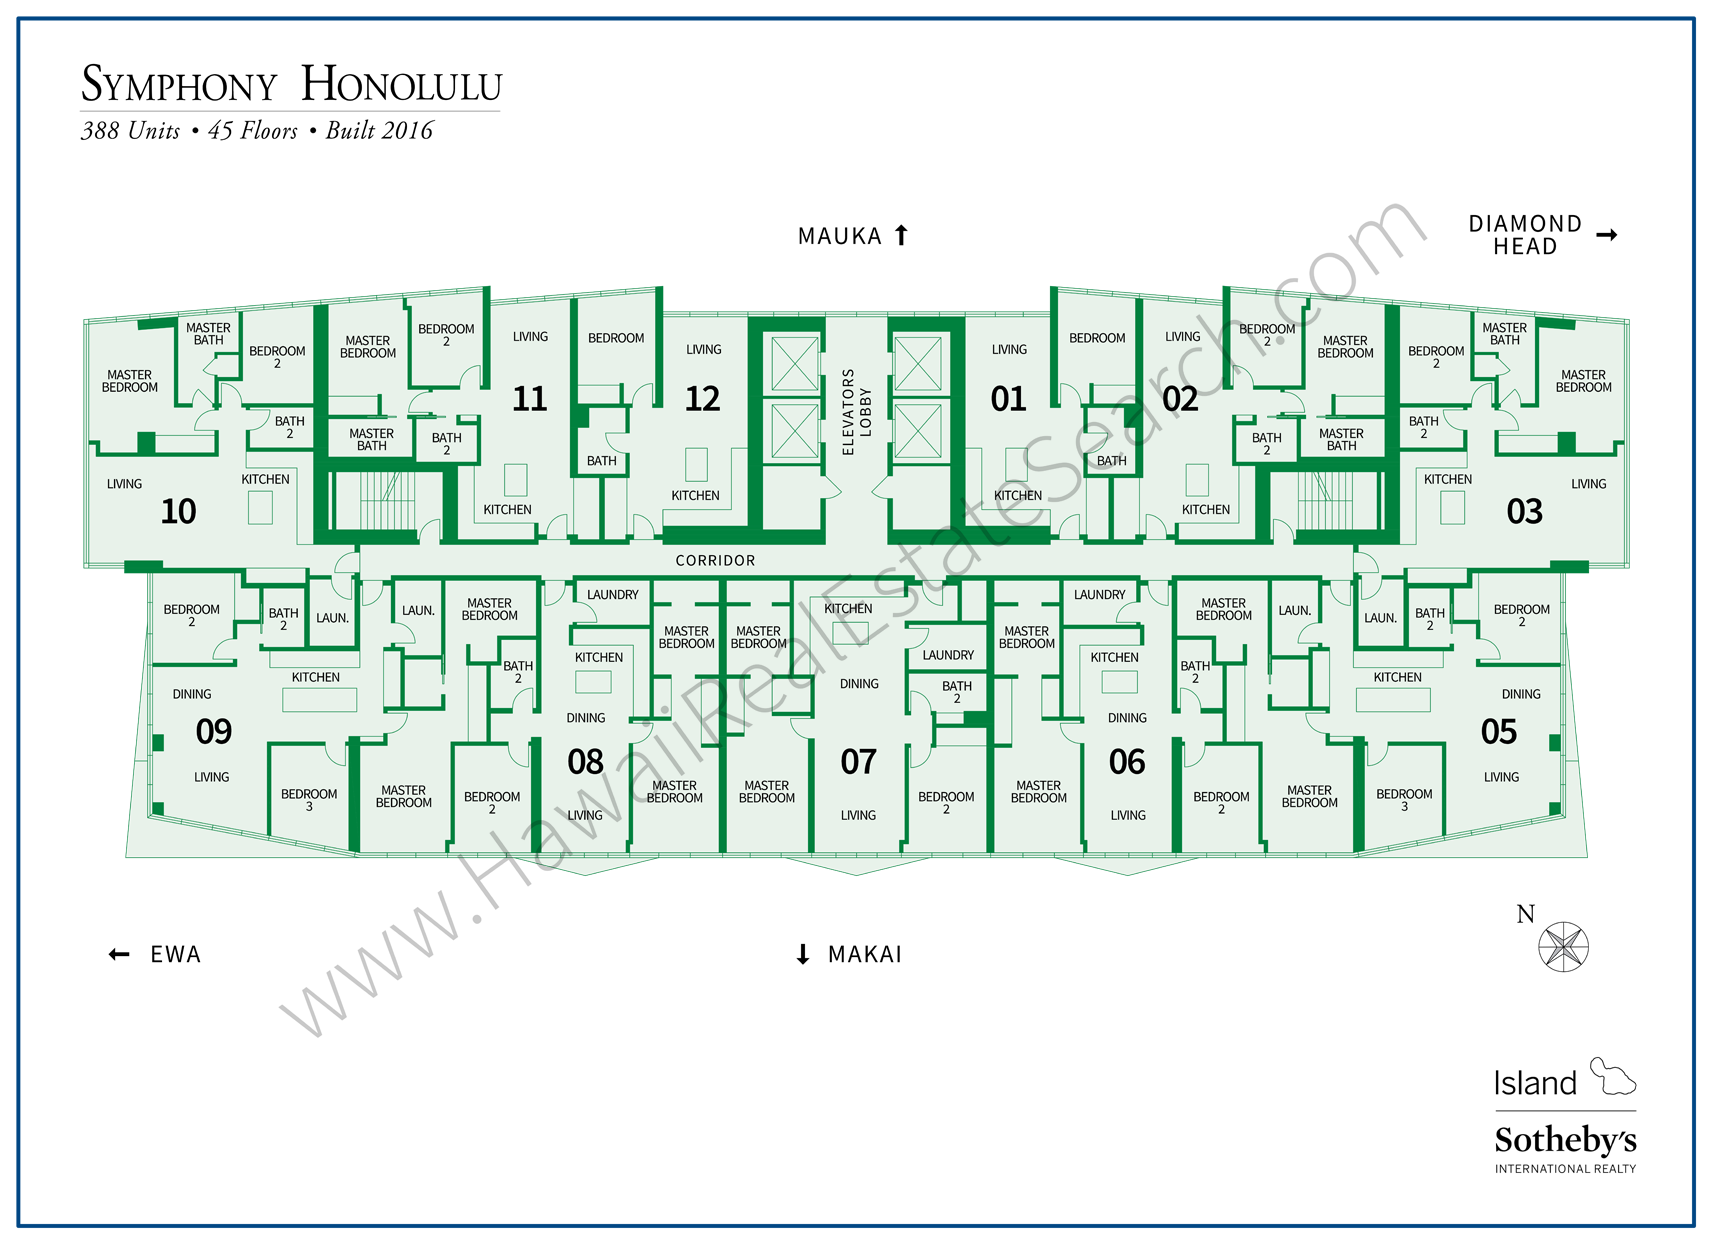 Symphony Honolulu Map